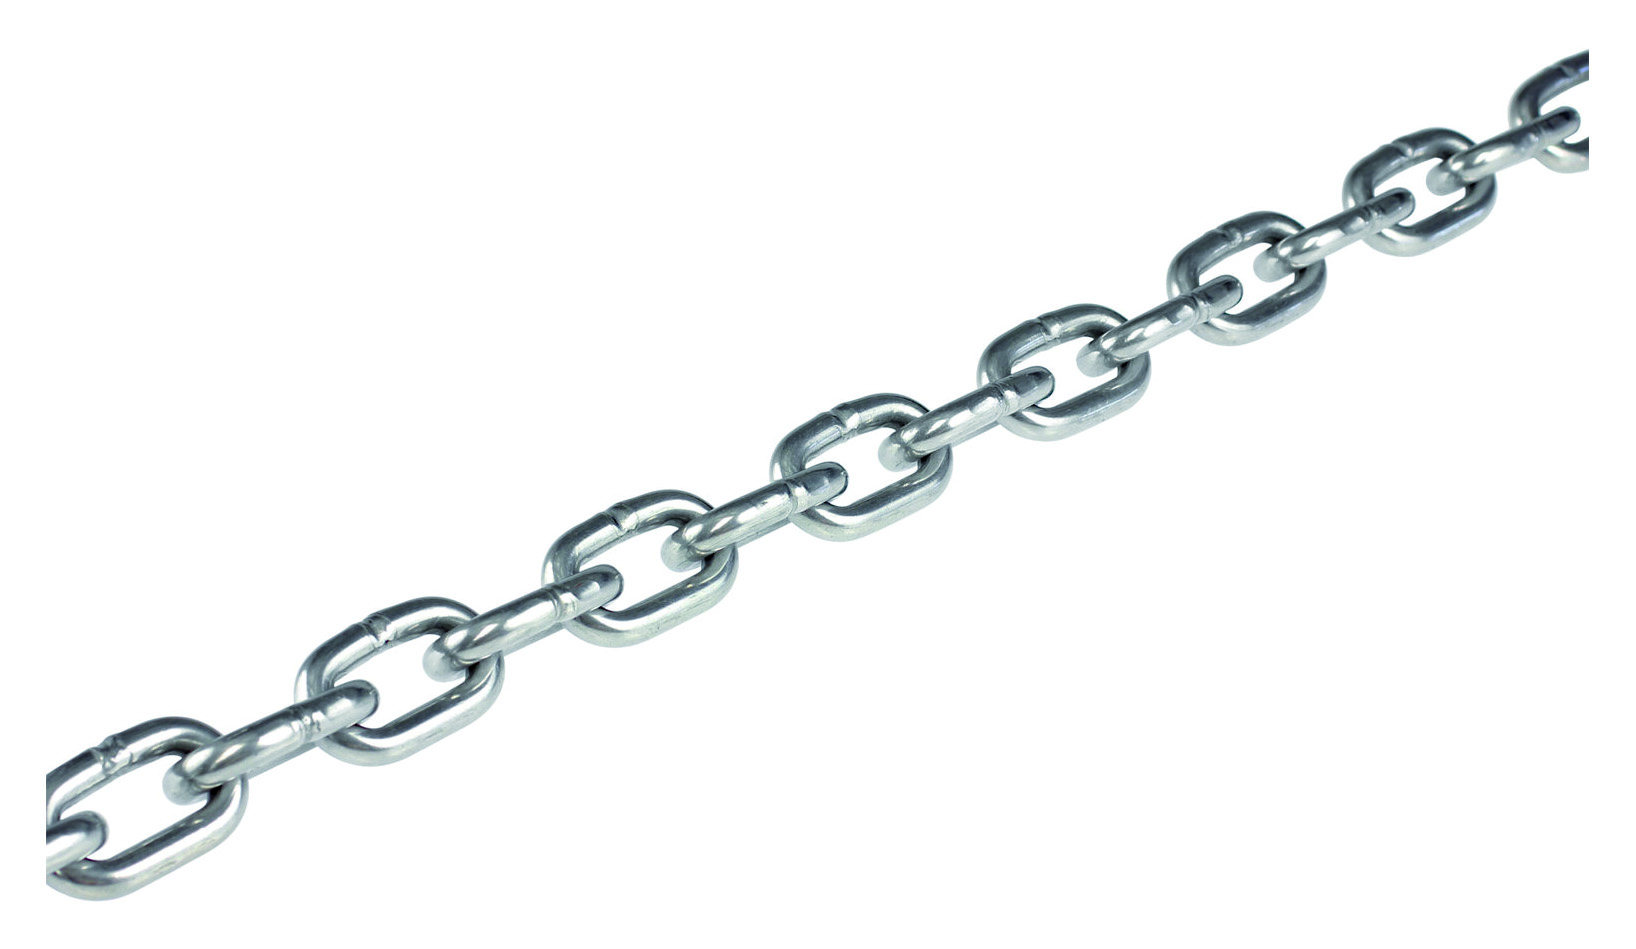 Talamex Chain Stainless Steel 6MM